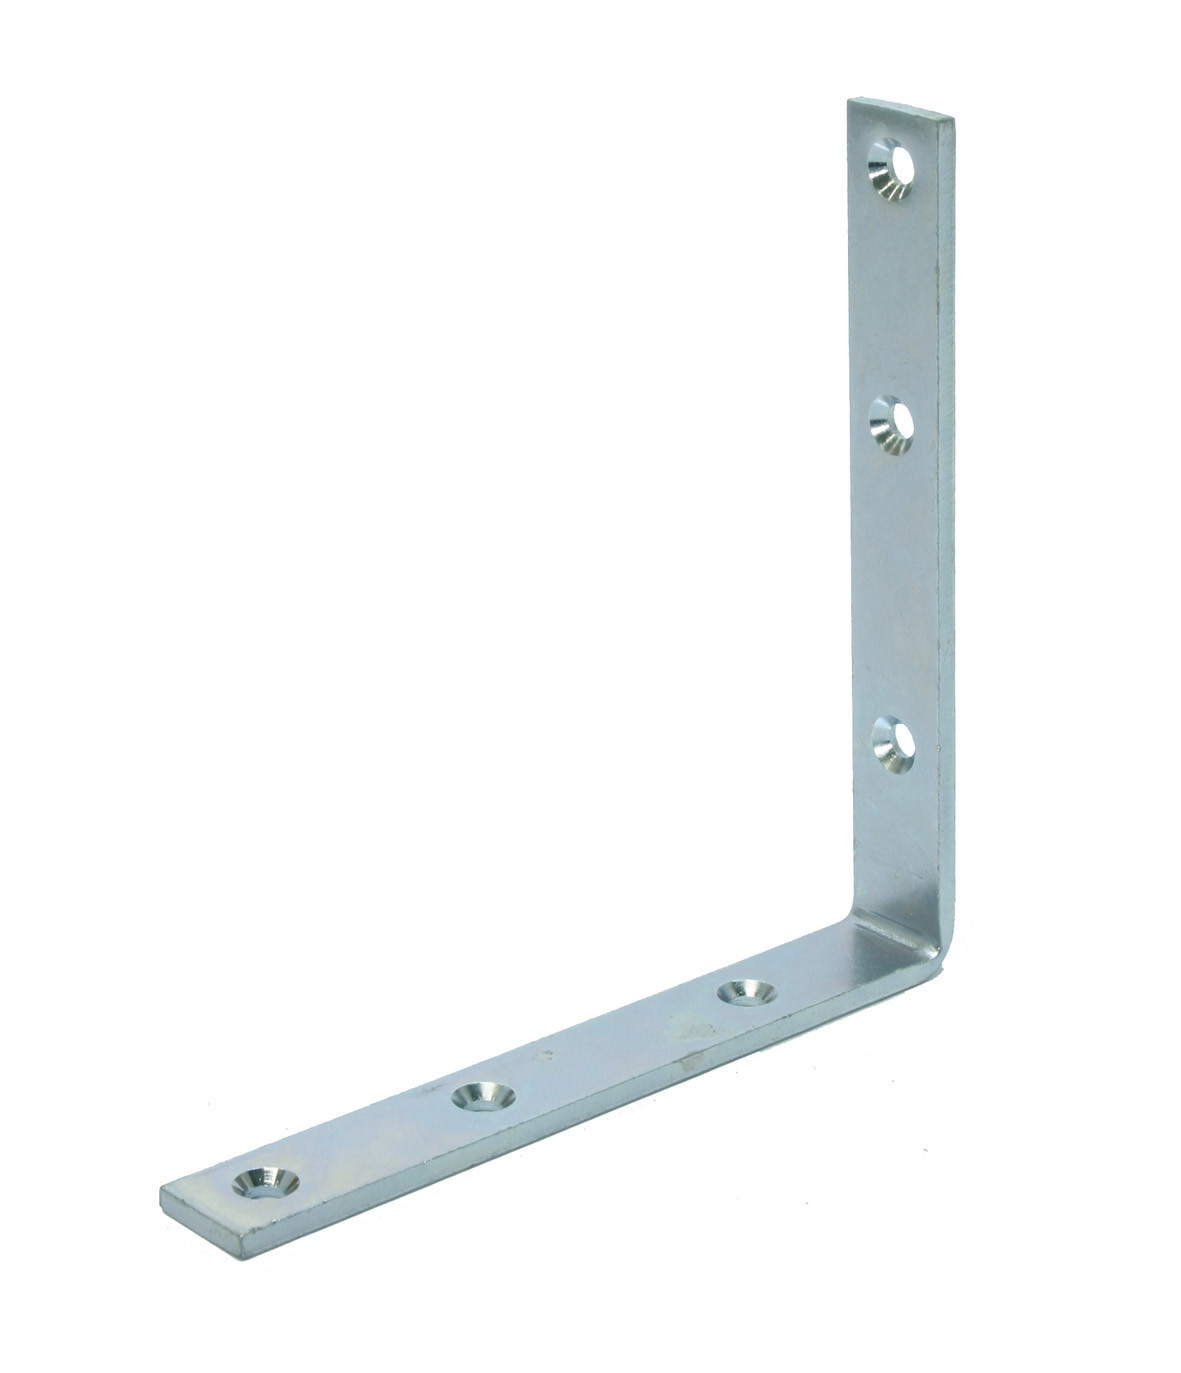 Angle bracket heavy duty 200x200 25x5 EV